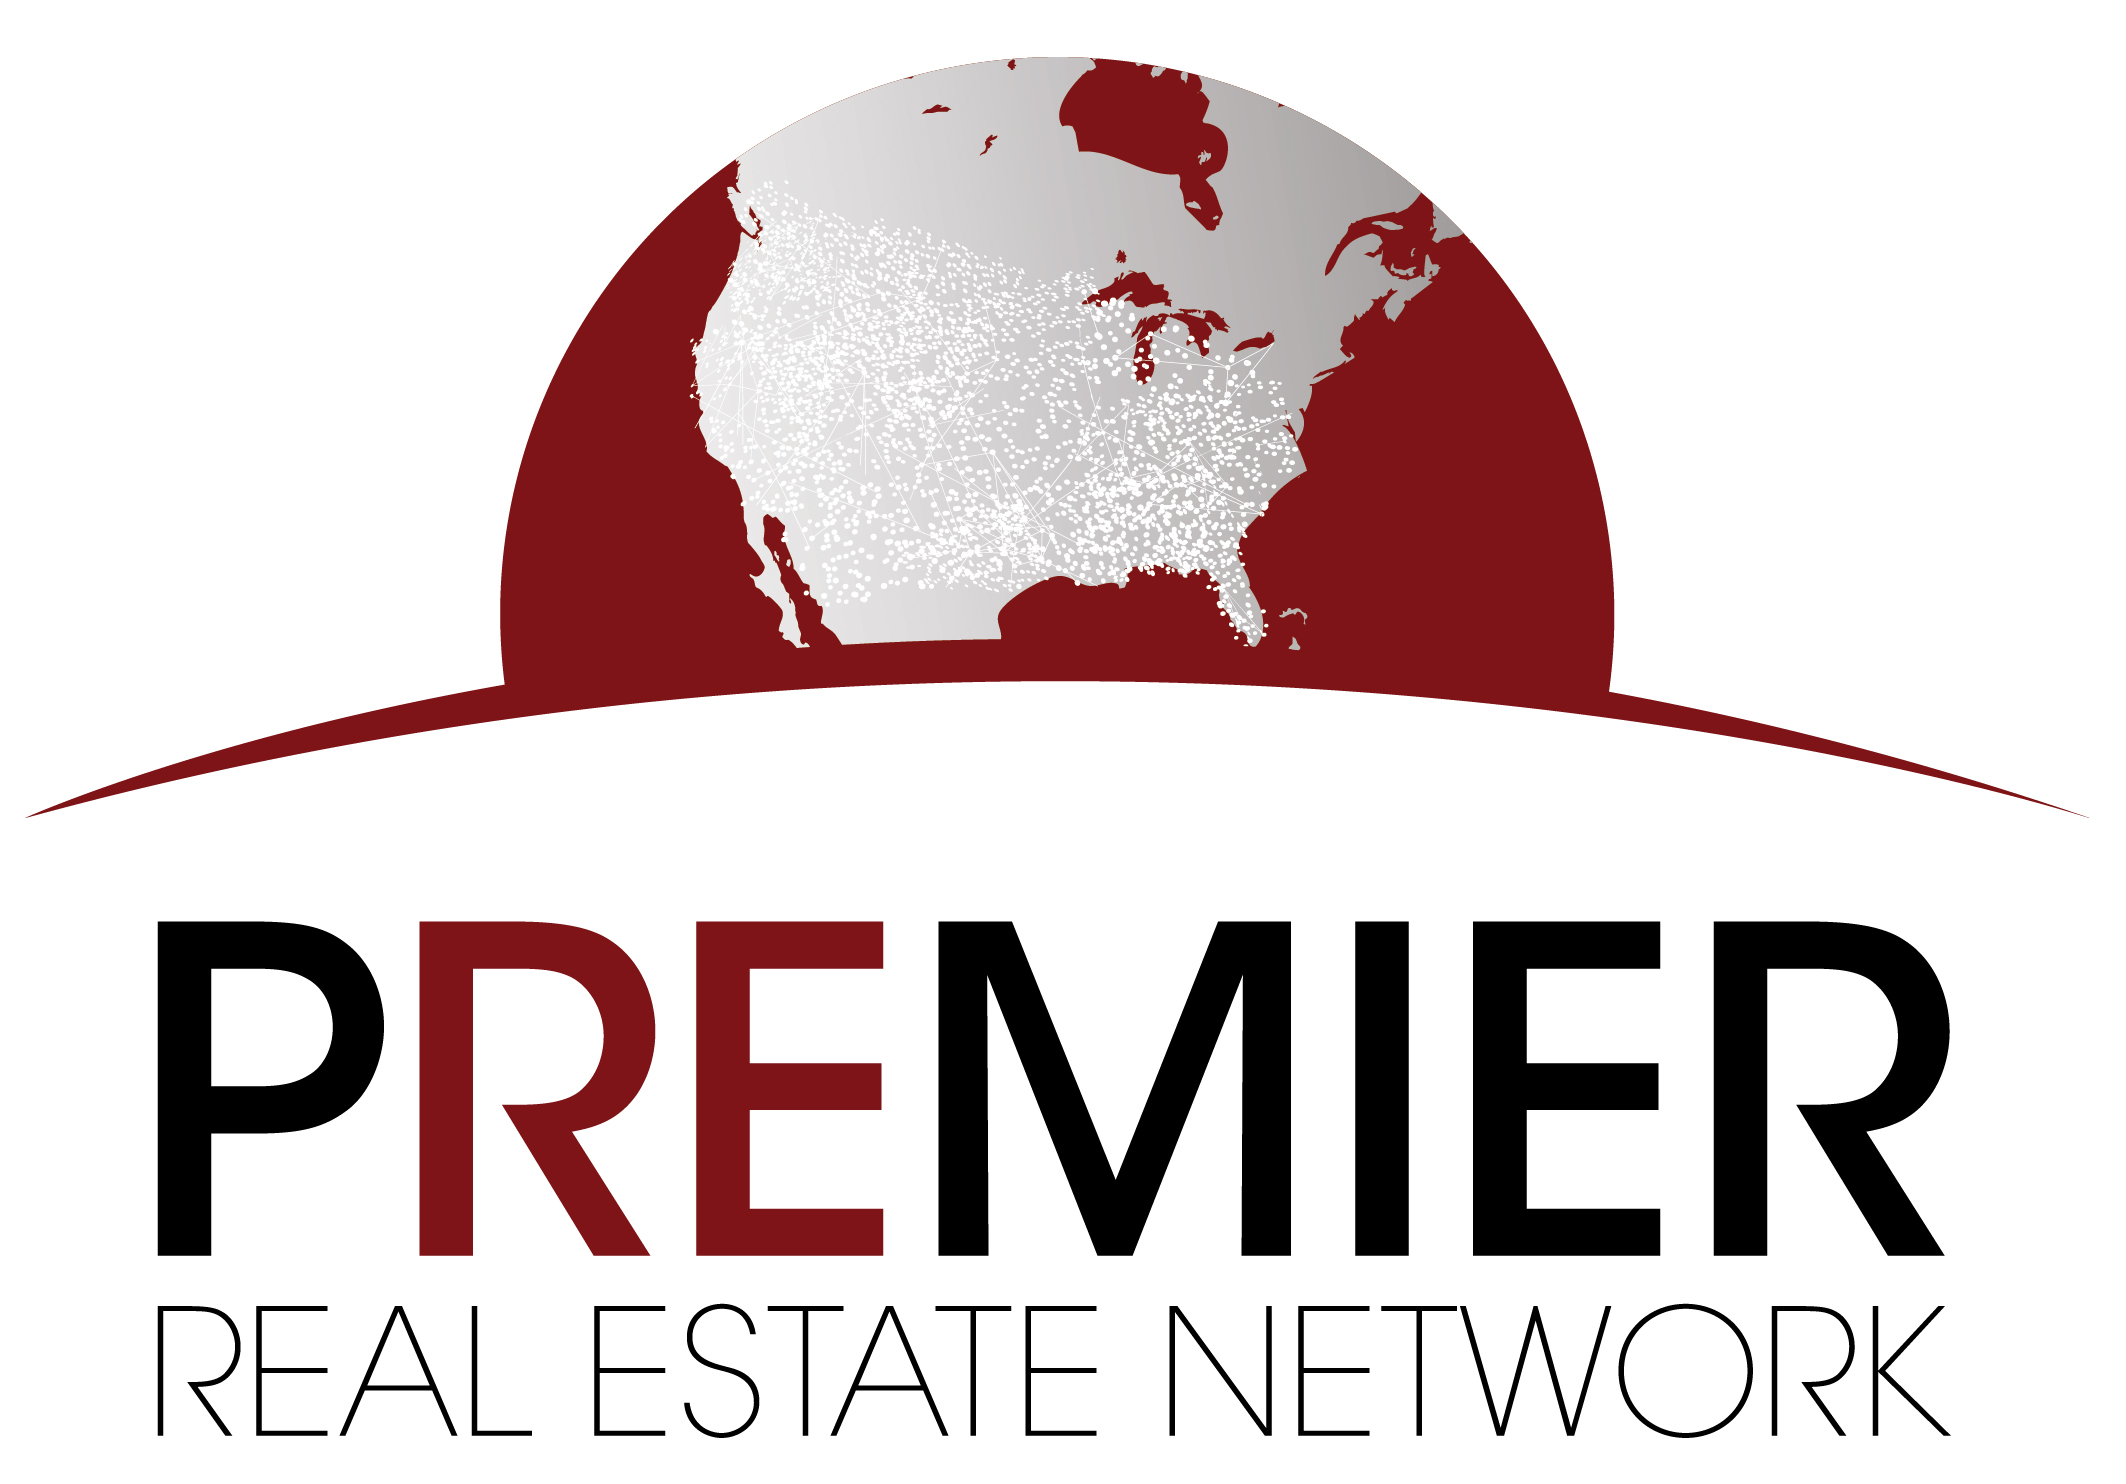 Premier Real Estate Network